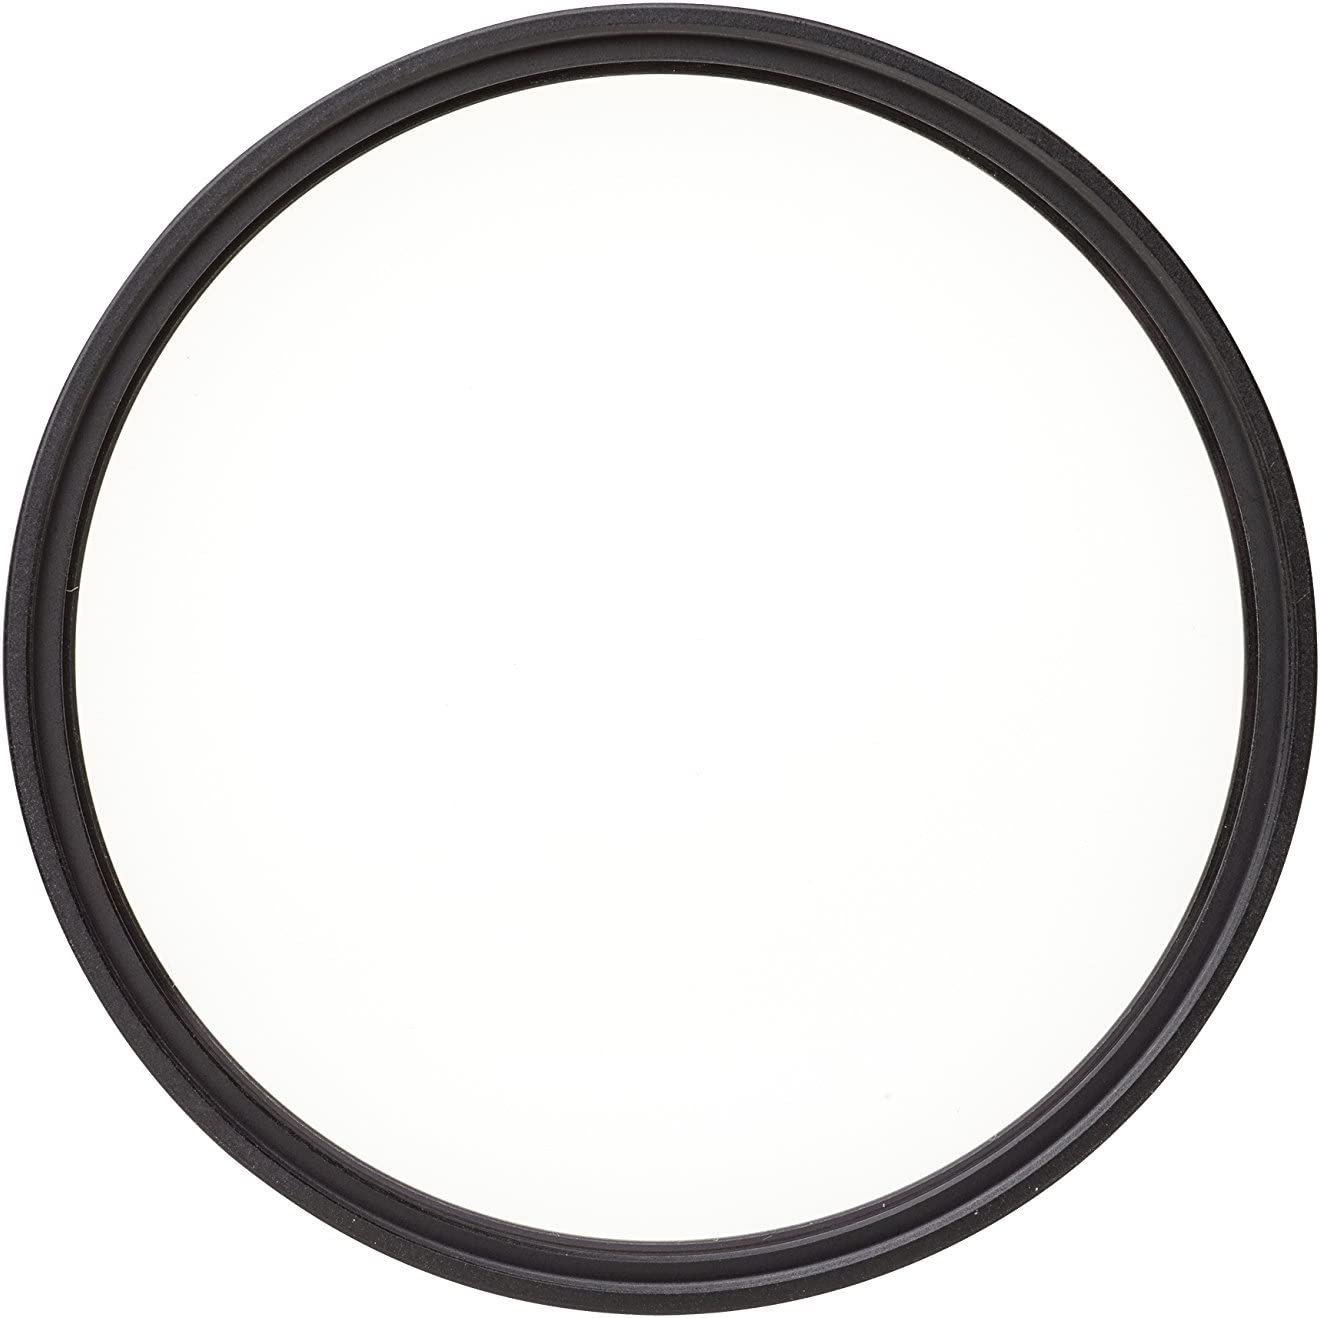 706701 with specialty Schott glass in floating brass ring Heliopan 67mm UV Filter